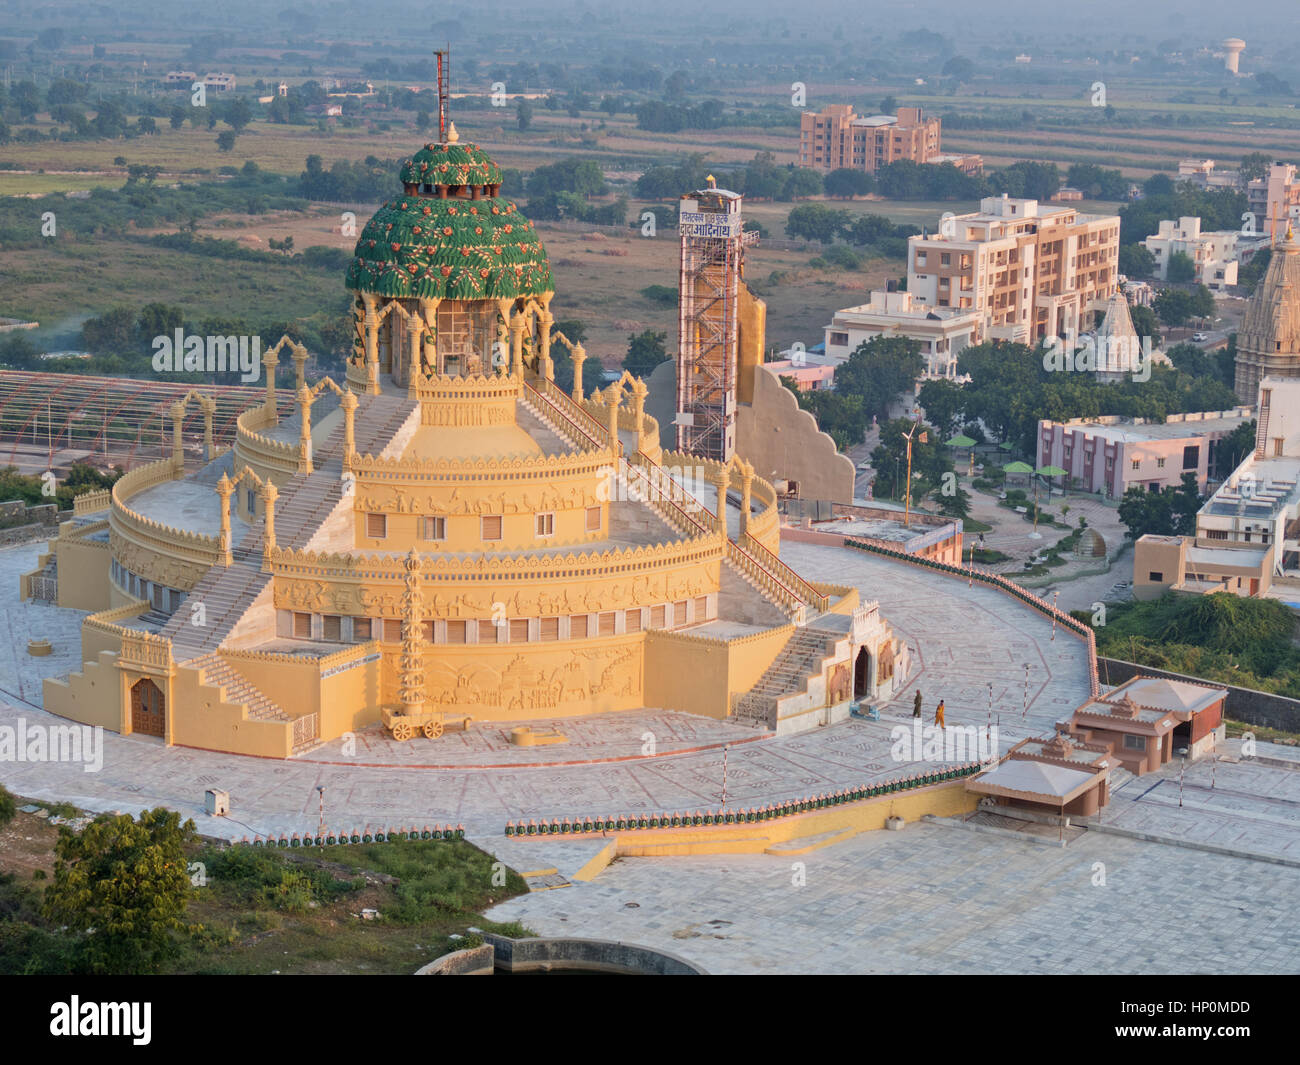 Samovsara Mandir temple at Palitana in Gujarat, a sacred site in the Jain religion that attracts pilgrims to India - Stock Image